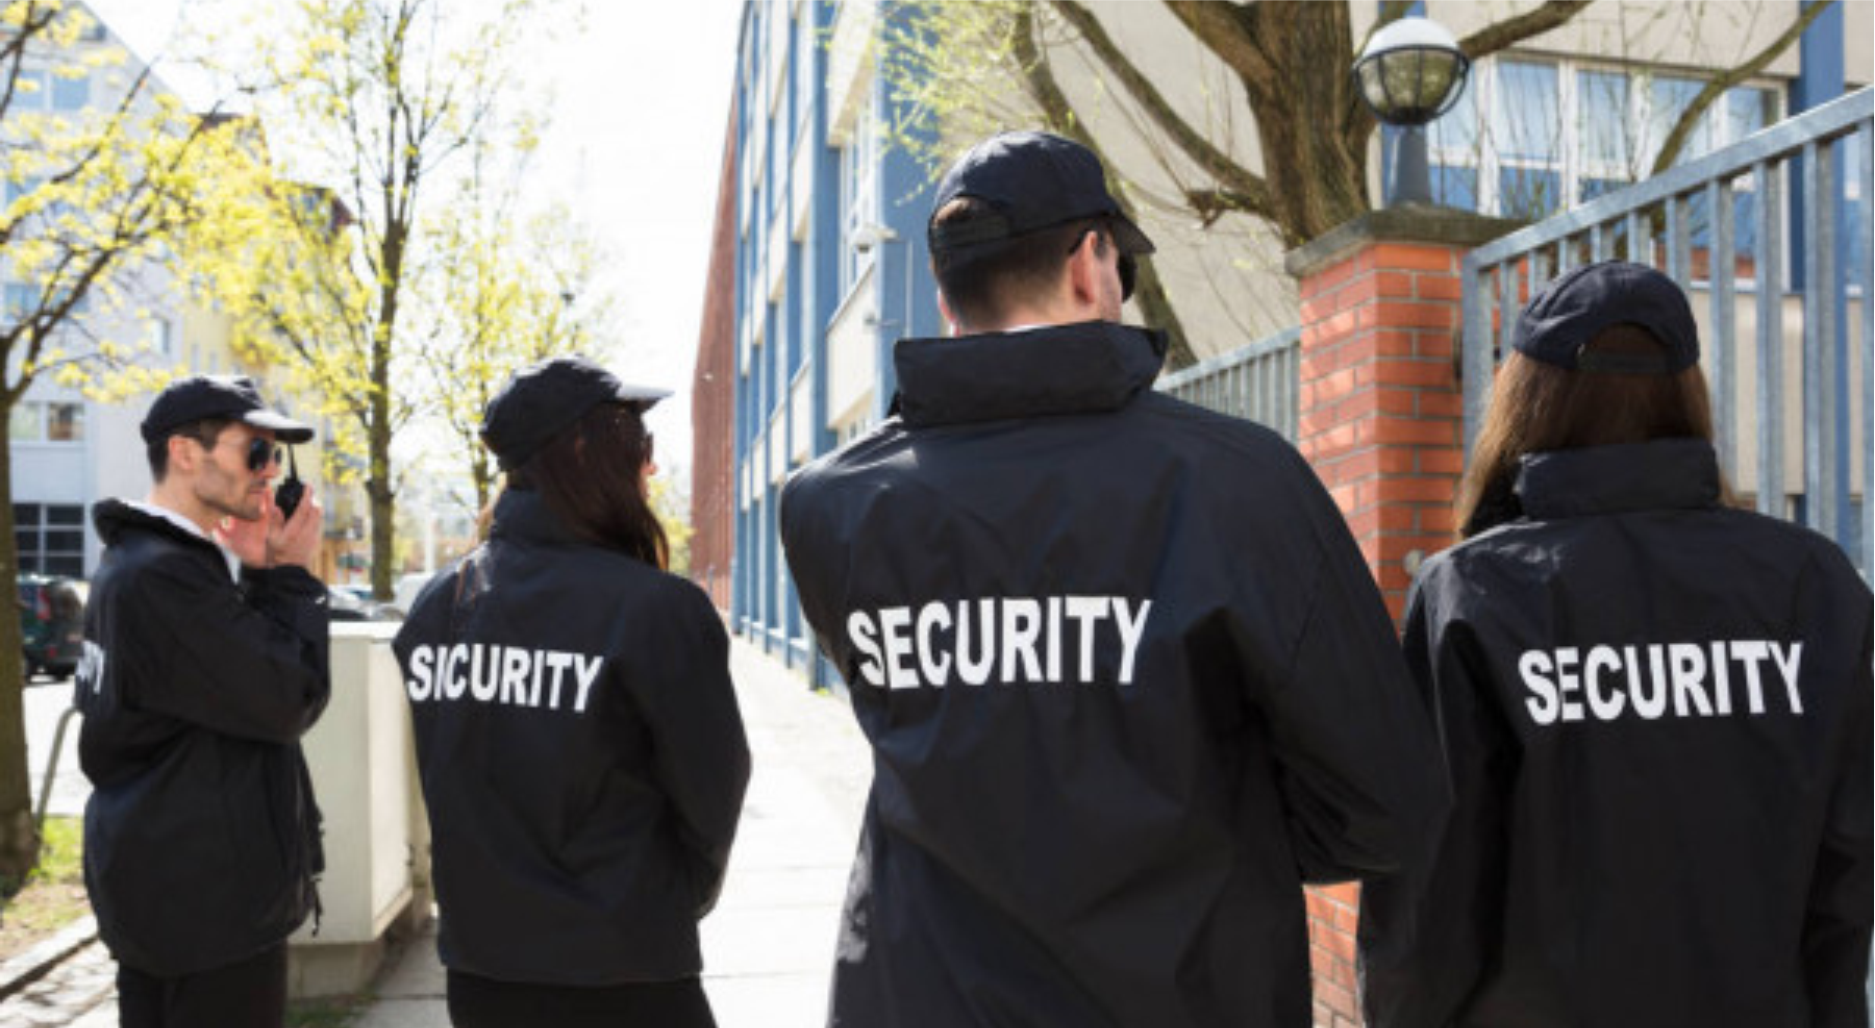 Stamford Security - Benefits of hiring a professional security company